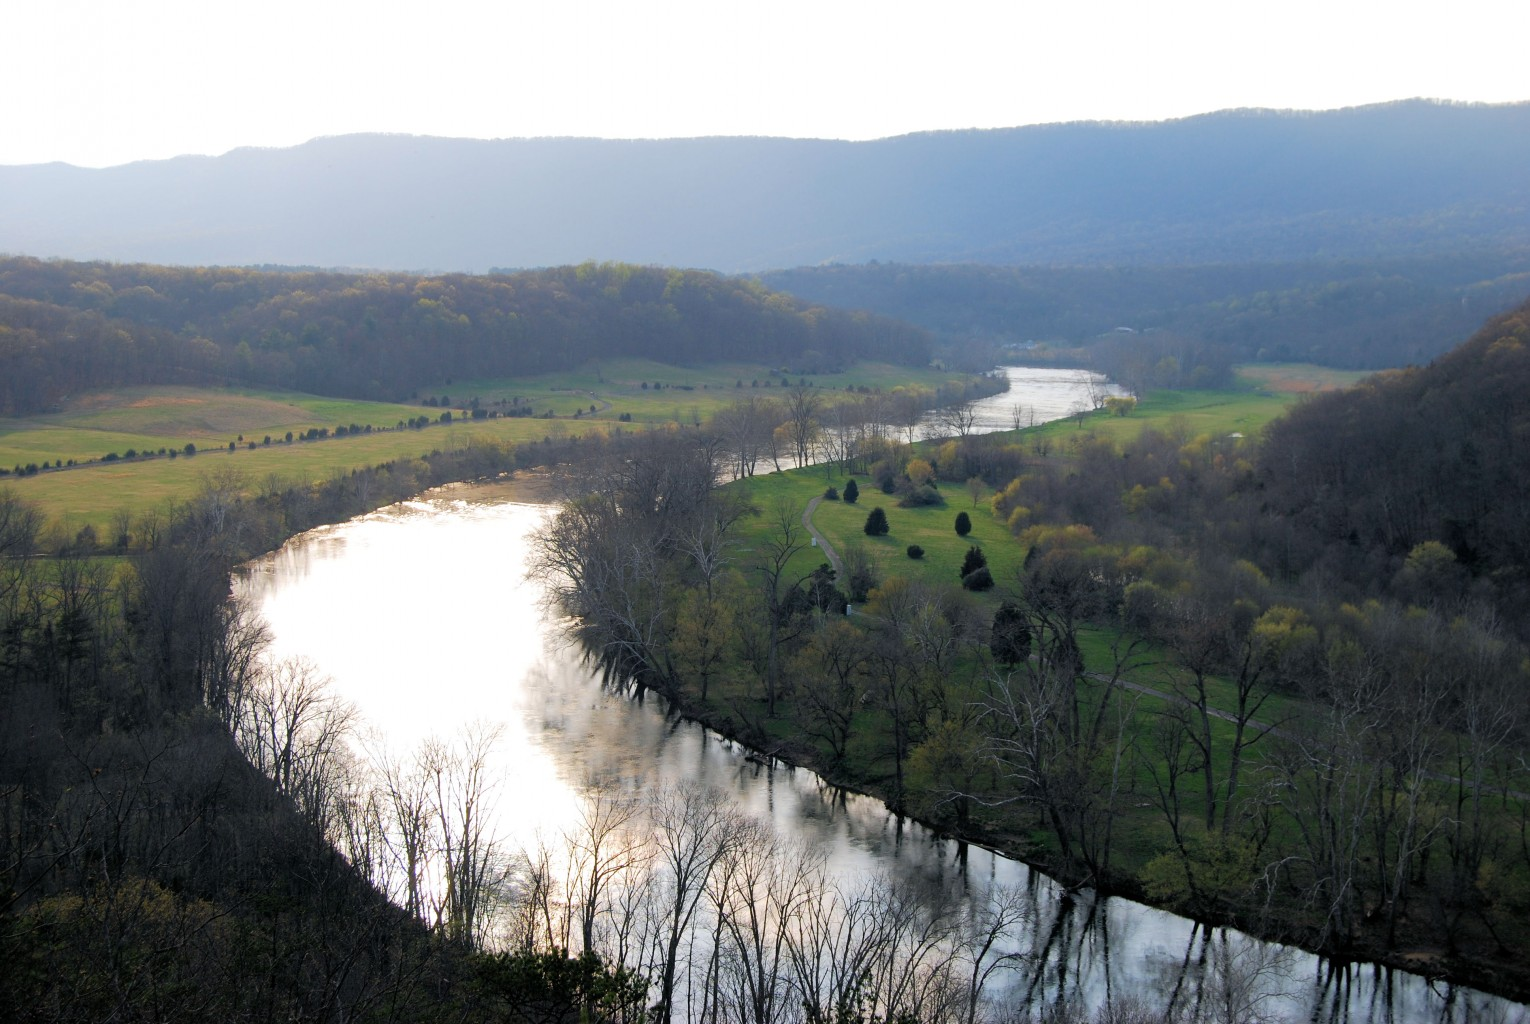 First_Day_of_Spring_at_Shenandoah_River_State_Park_(8553737401)